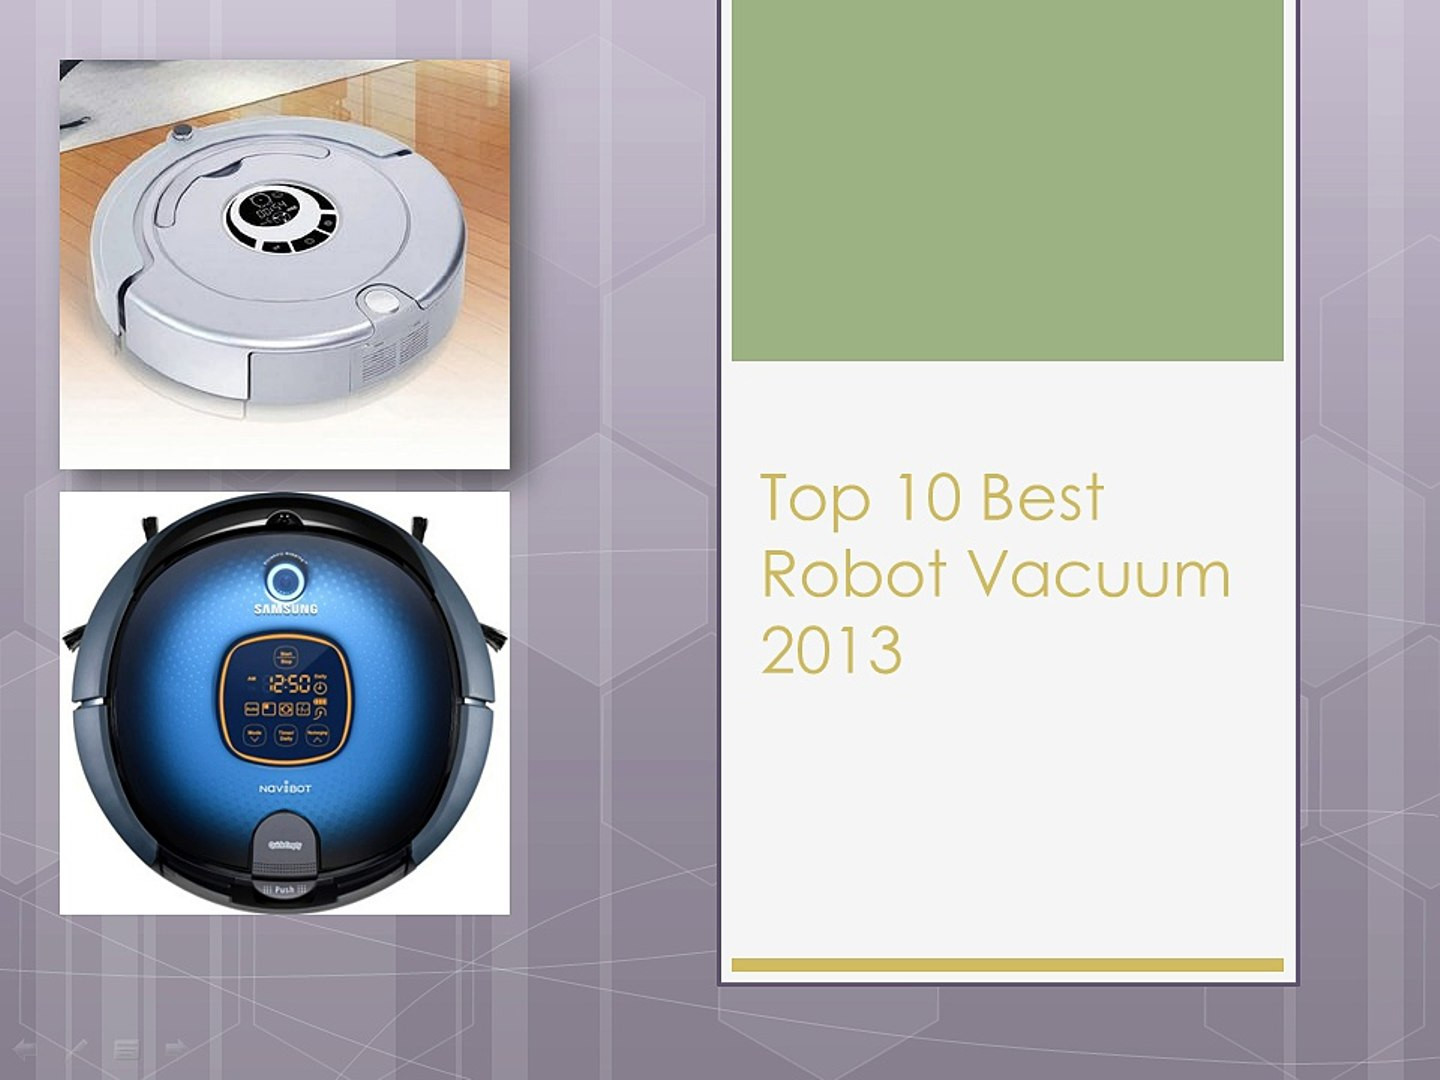 Best Sweeper for Hardwood Floors and Pet Hair Of top 10 Best Robotic Vacuum Cleaner for Hardwood Floors 2013 Video Intended for top 10 Best Robotic Vacuum Cleaner for Hardwood Floors 2013 Video Dailymotion